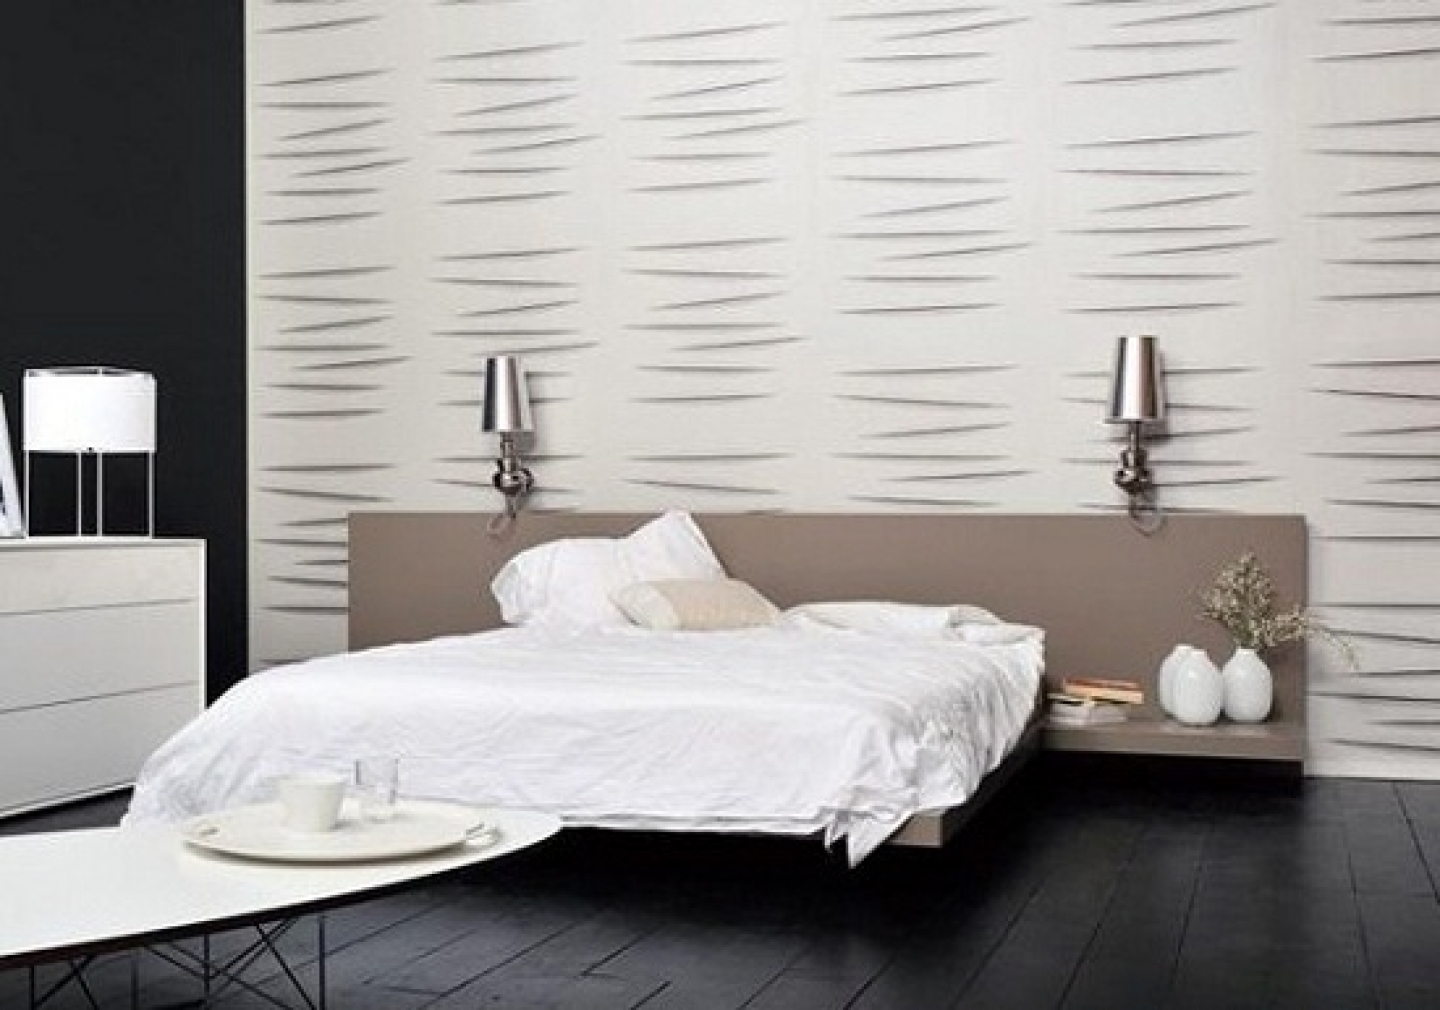 Modern bedroom wallpaper large and beautiful photos photo to select modern bedroom wallpaper Modern wallpaper for bedroom